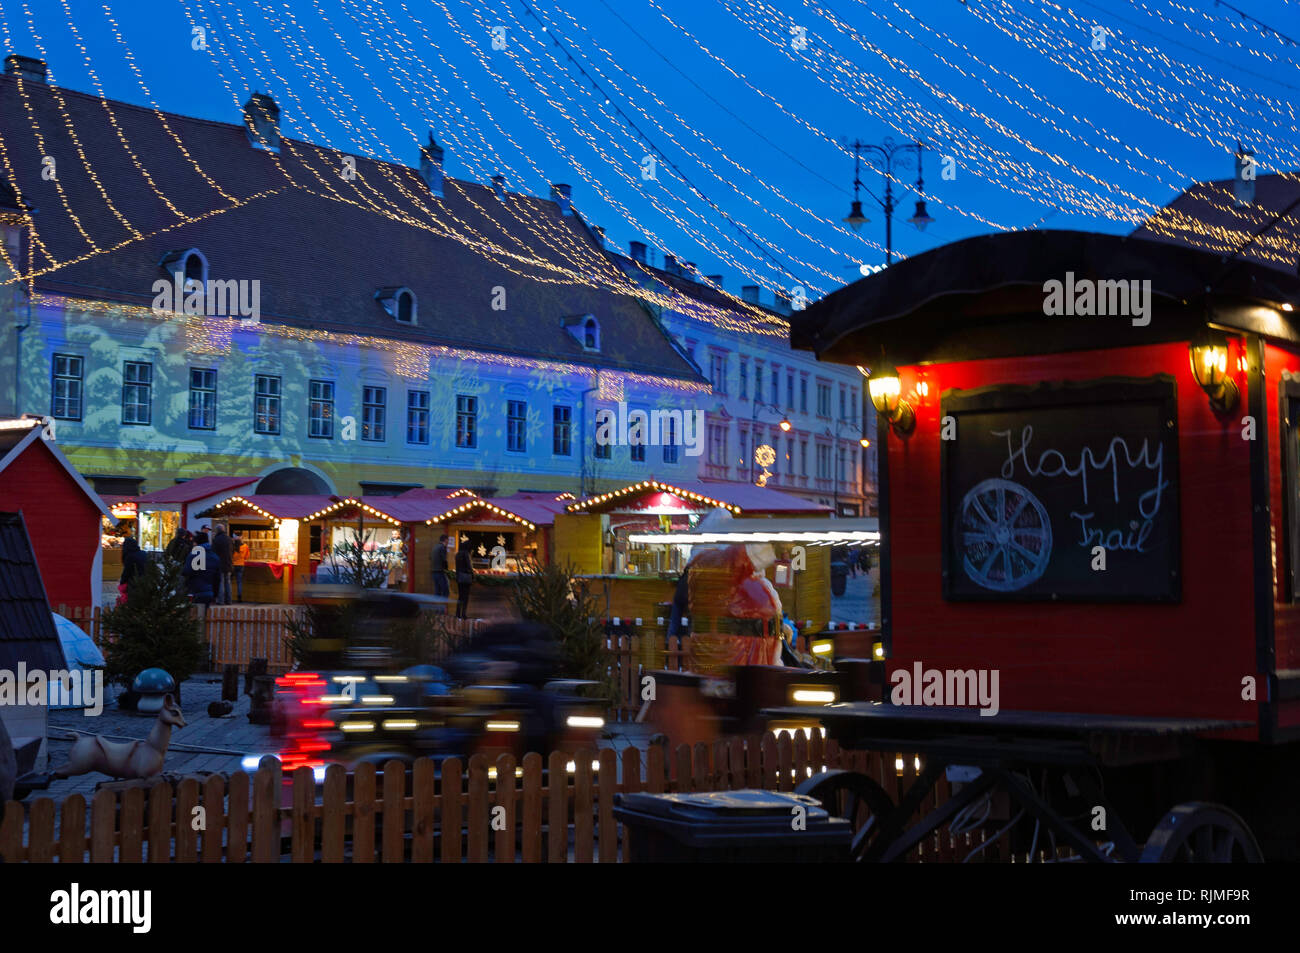 A 'Happy Trail' food canteen in Sibiu's Christmas market - Stock Image